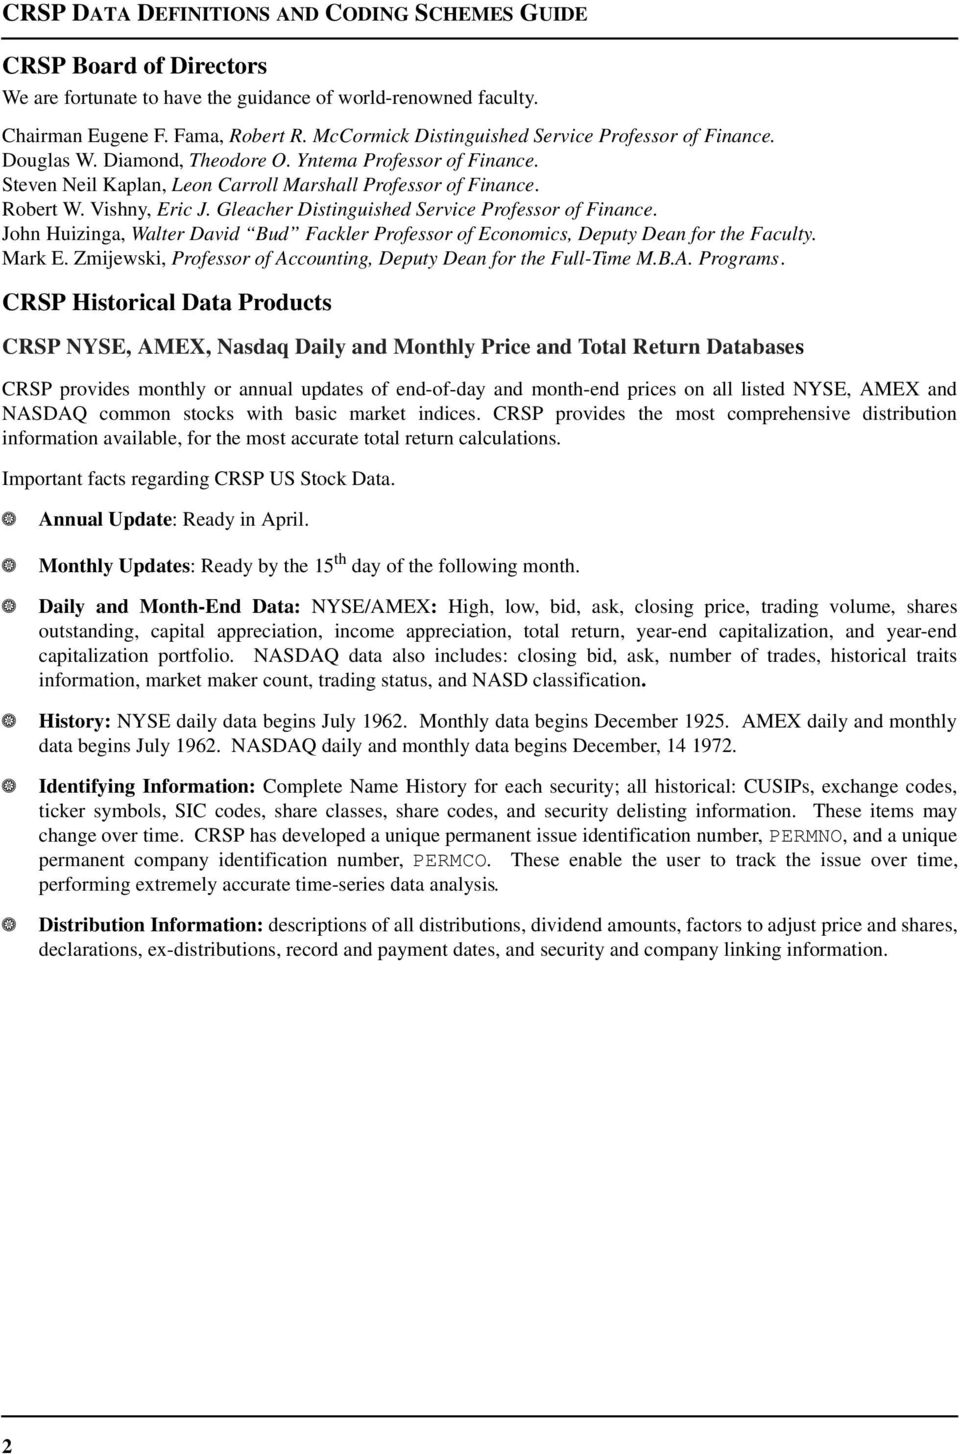 CRSP Data Definitions and Coding Schemes Guide  CRSP NYSE, AMEX